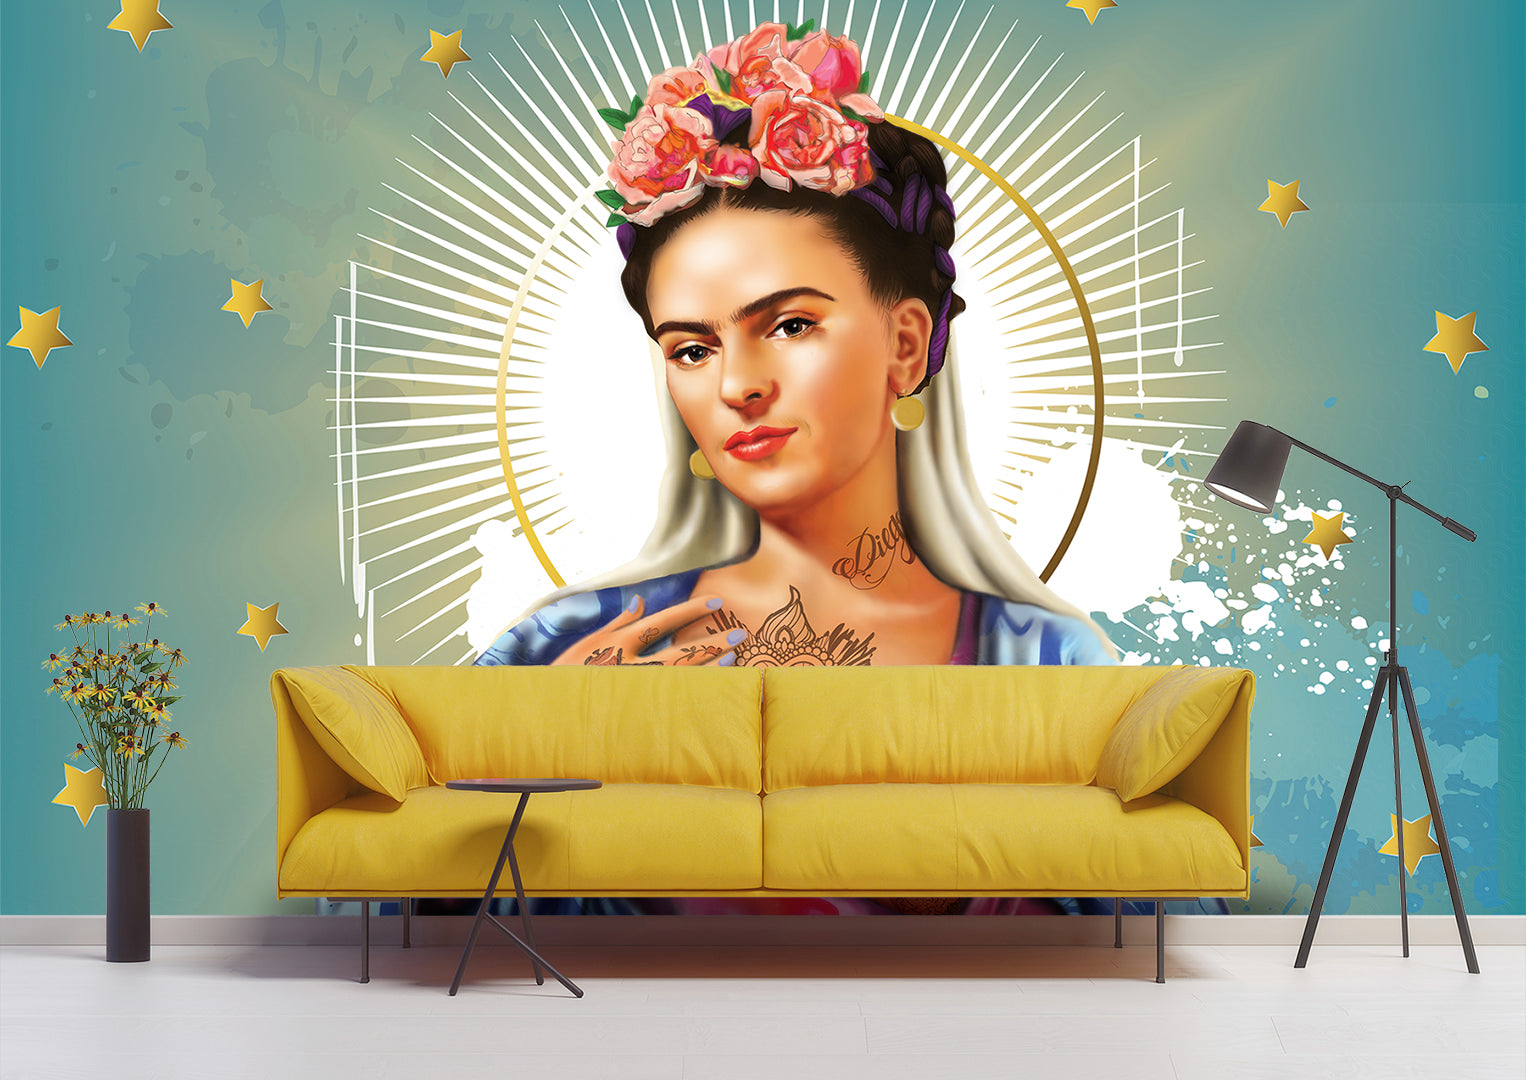 Virgin Frida Wallpaper